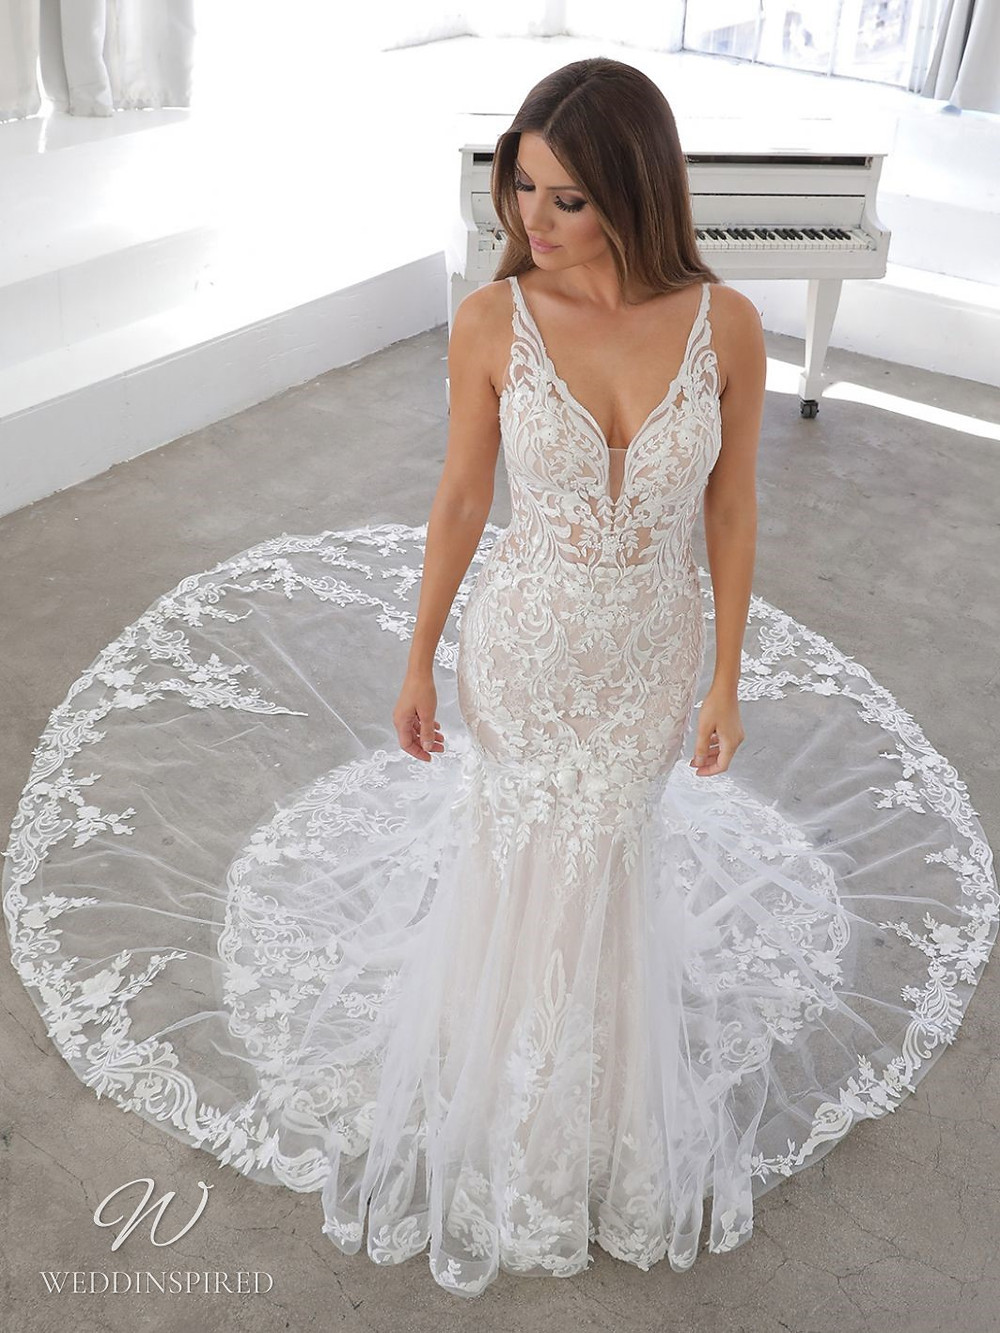 A Blue by Enzoani 2021 lace mermaid wedding dress with straps and a v neck